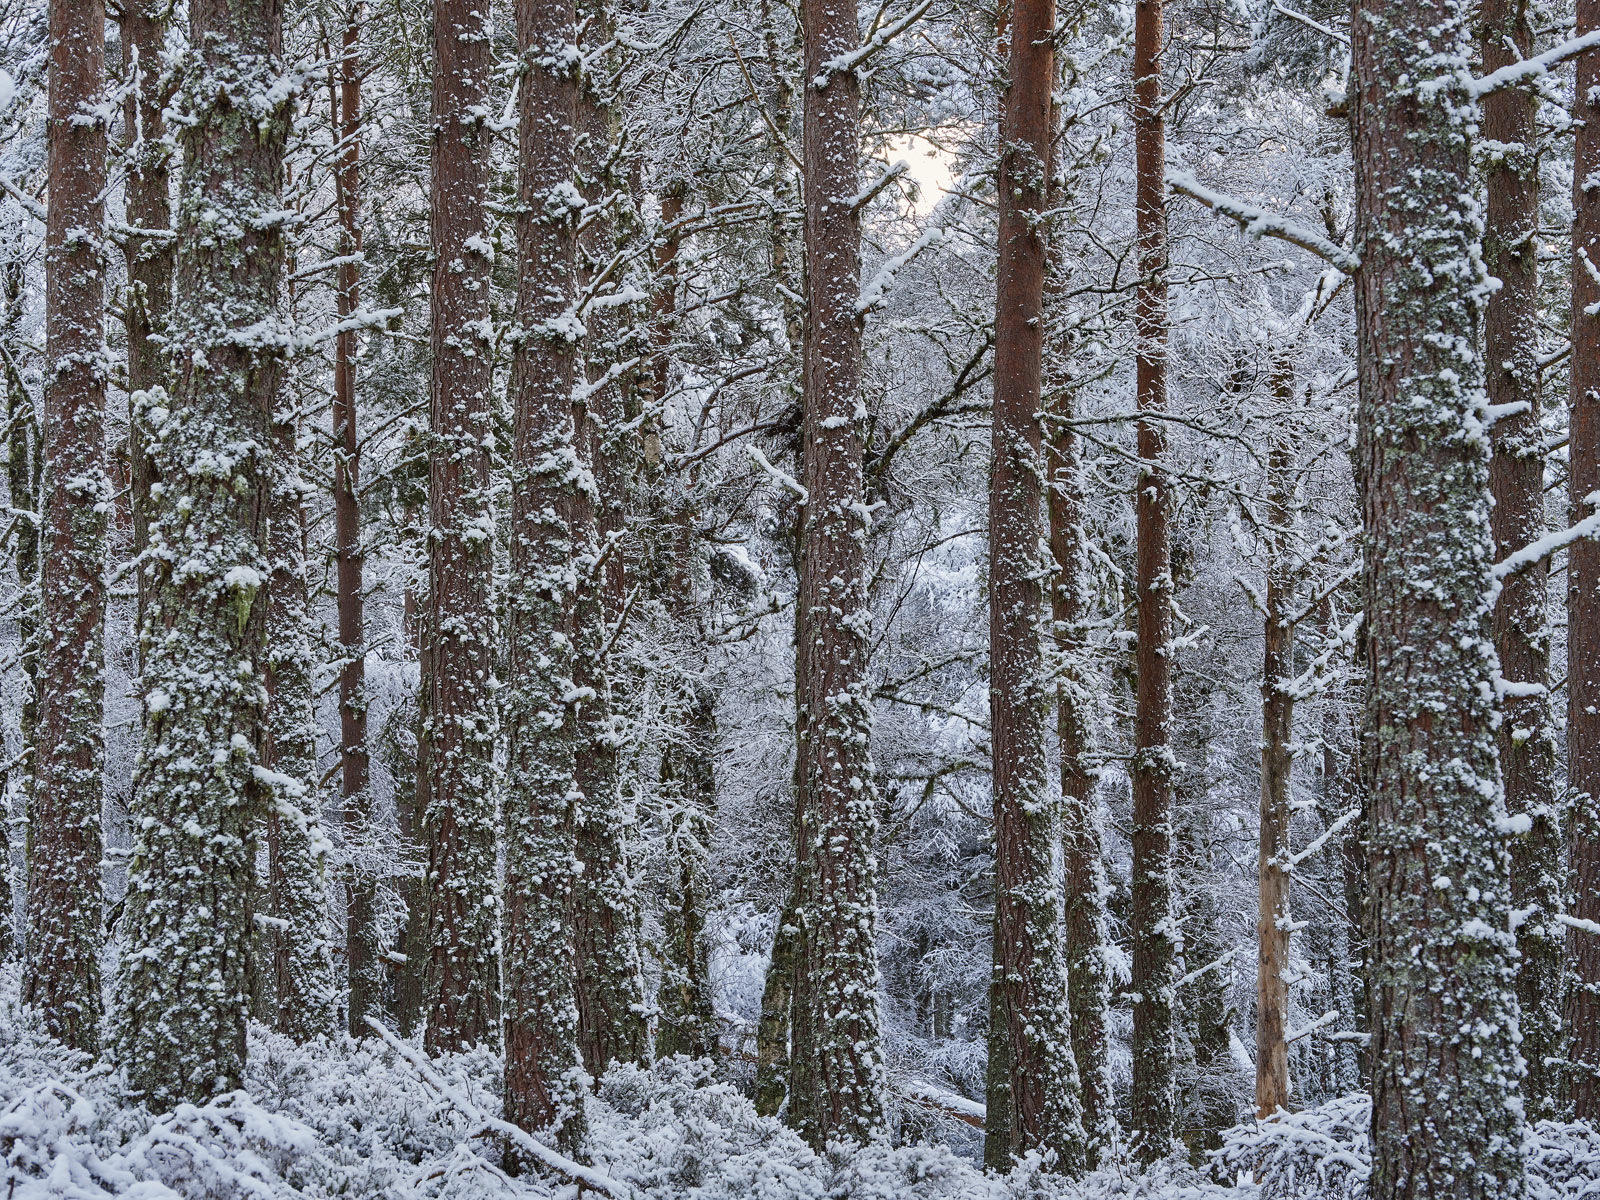 Pine woods are not usually my first choice to visit the uniform stands of trees are densely packed and little light manages to...